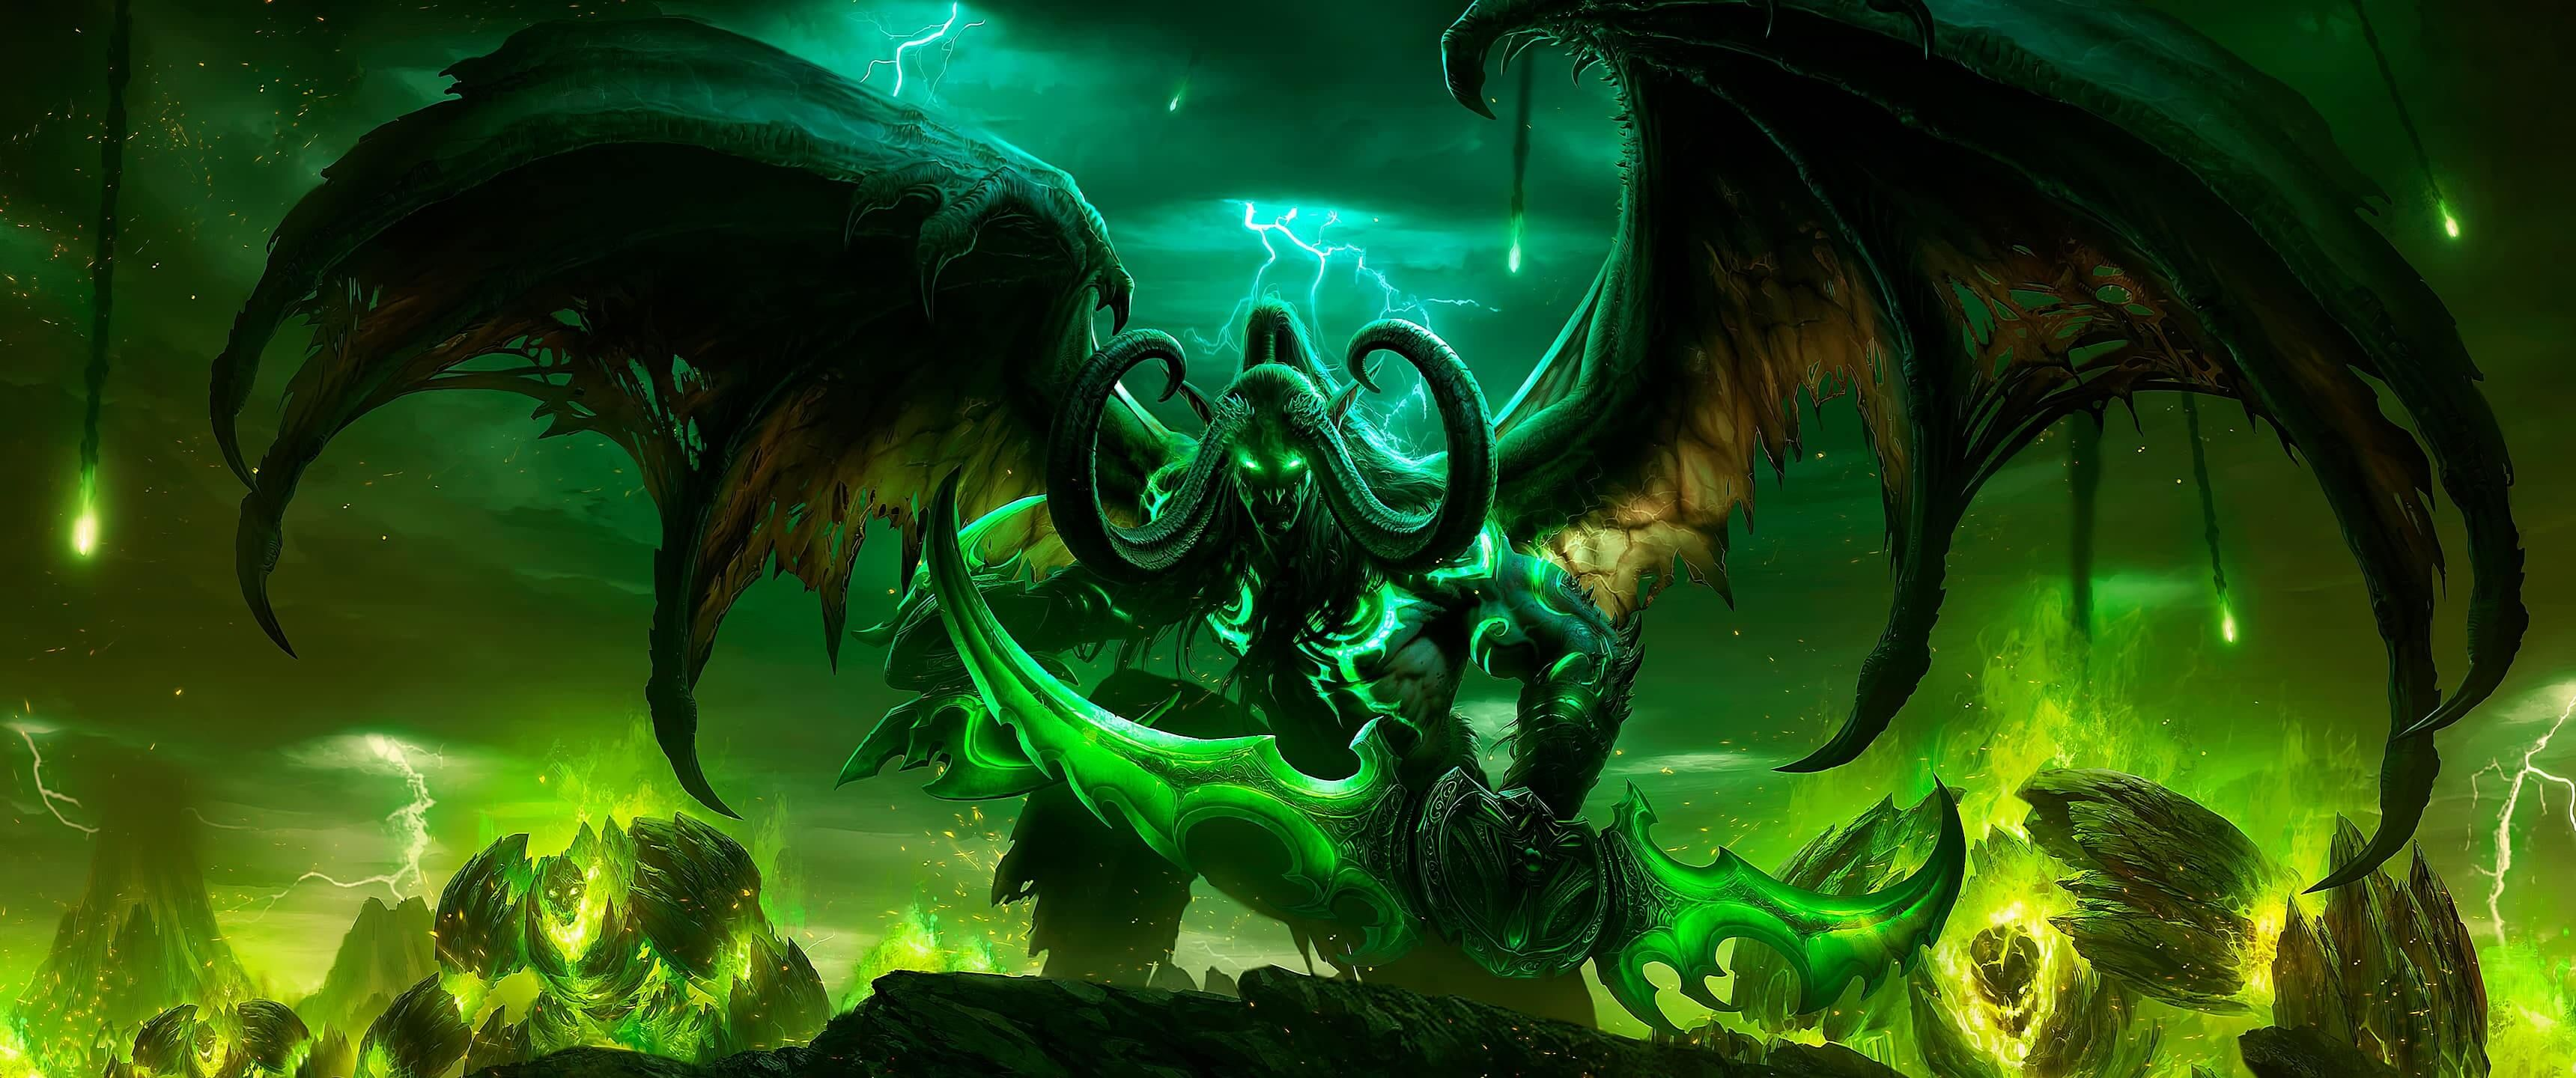 Ultrawide 21 9 Wallpaper Collection 3440 Updated Regularly Wallpaper Post In 2020 Dual Monitor Wallpaper Warcraft Legion Warcraft